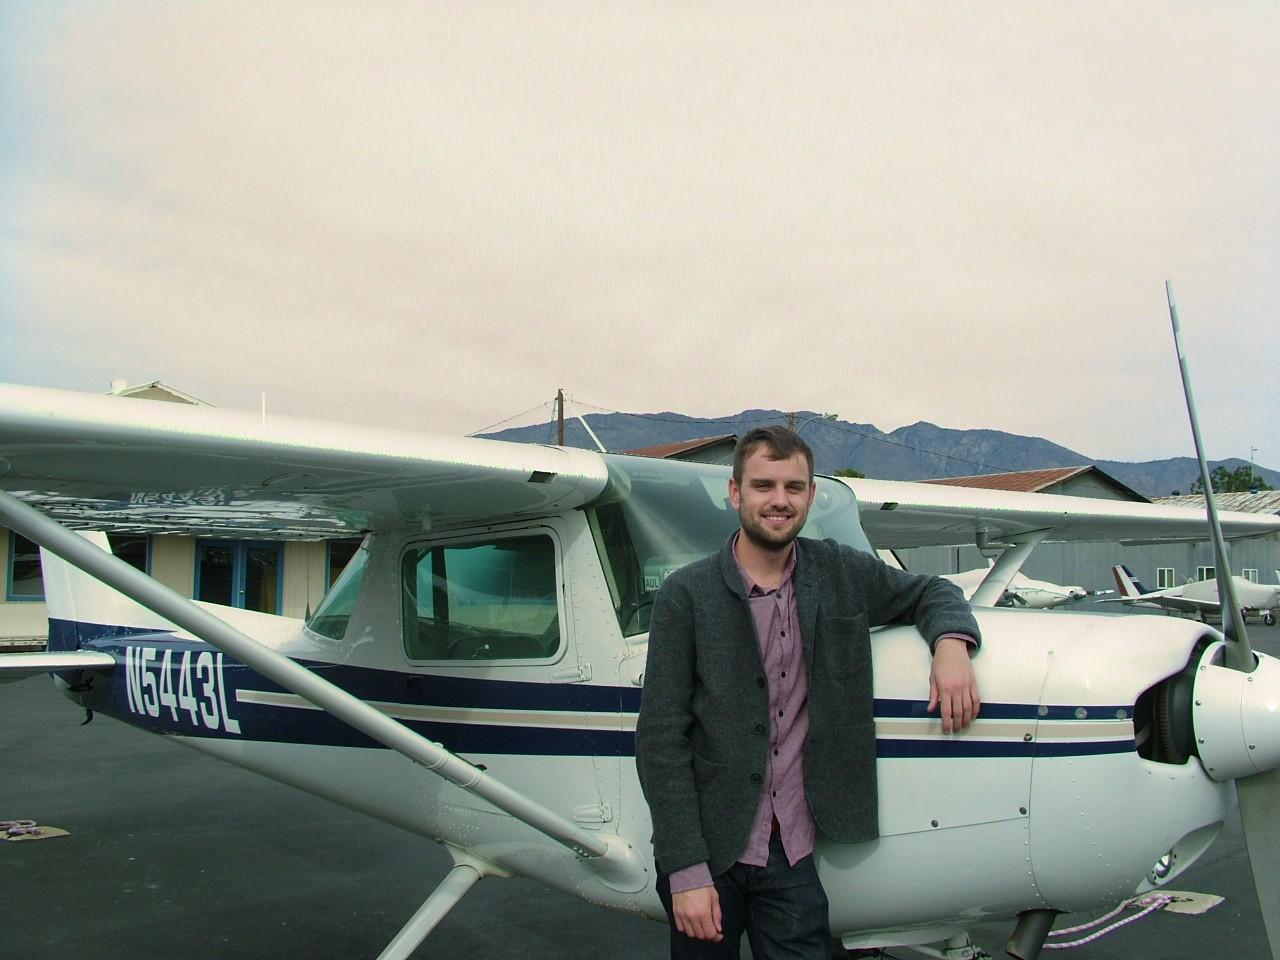 Certified Flight Instructor - Brennan Hoenes